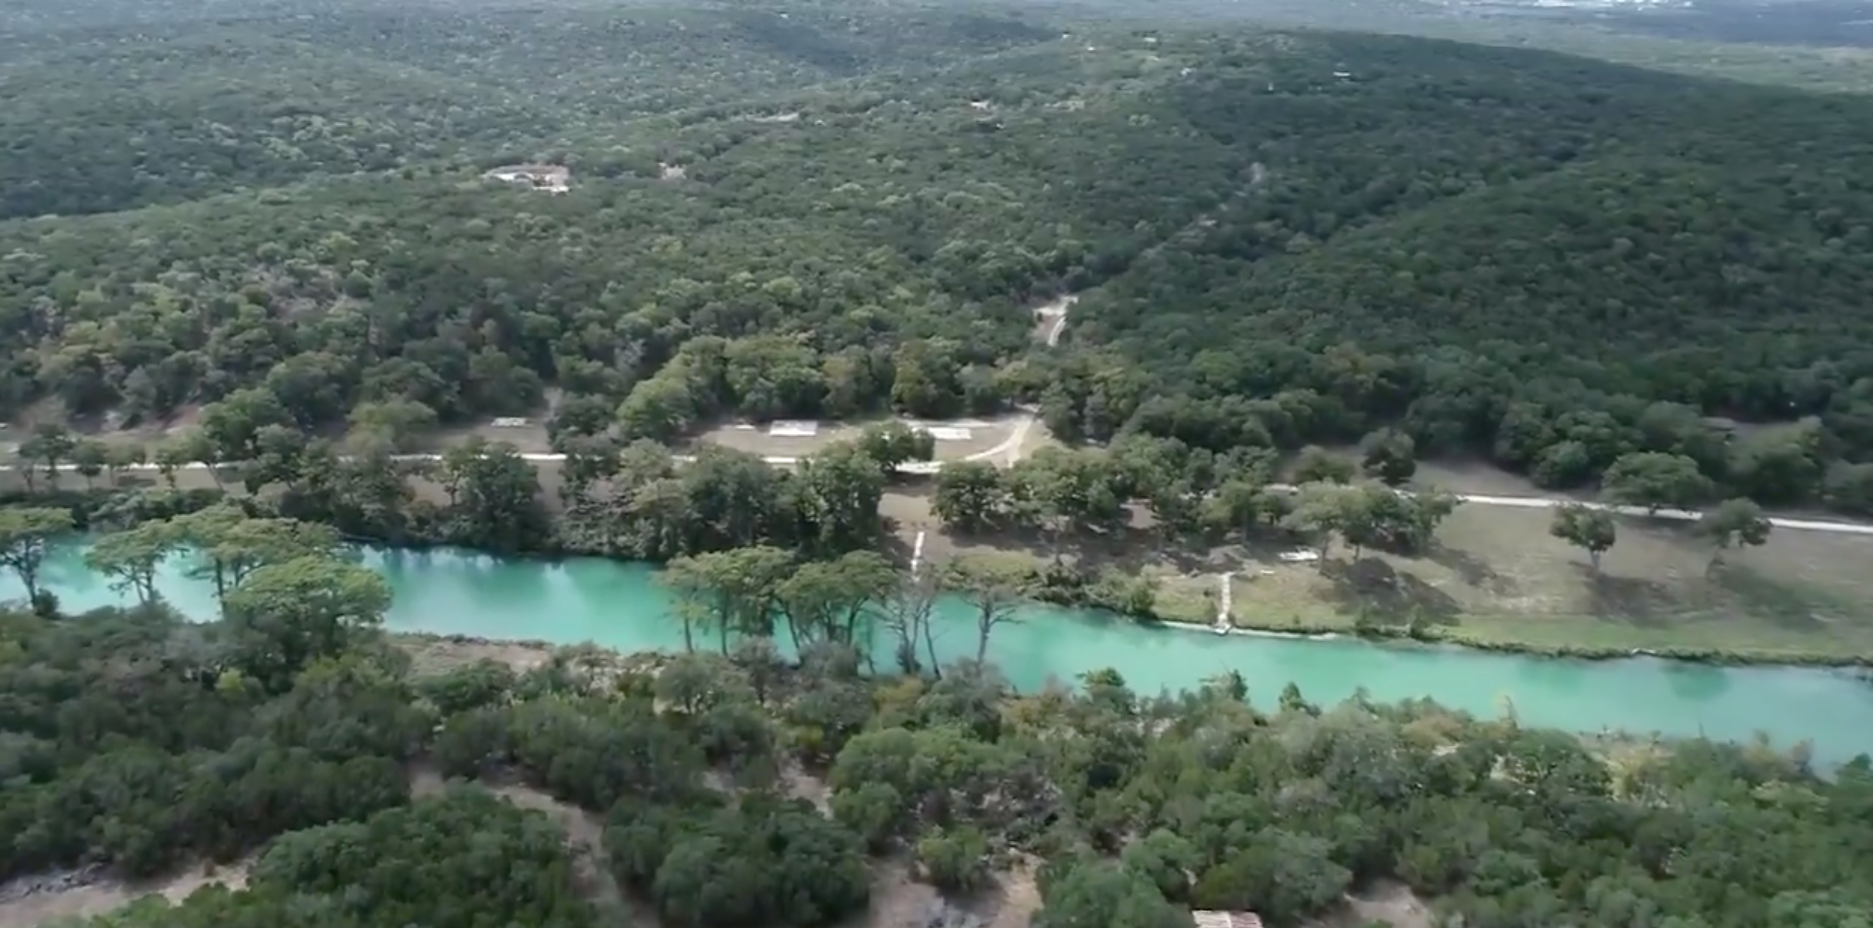 Hays County plans to transform El Rancho Cima into public park along Blanco River